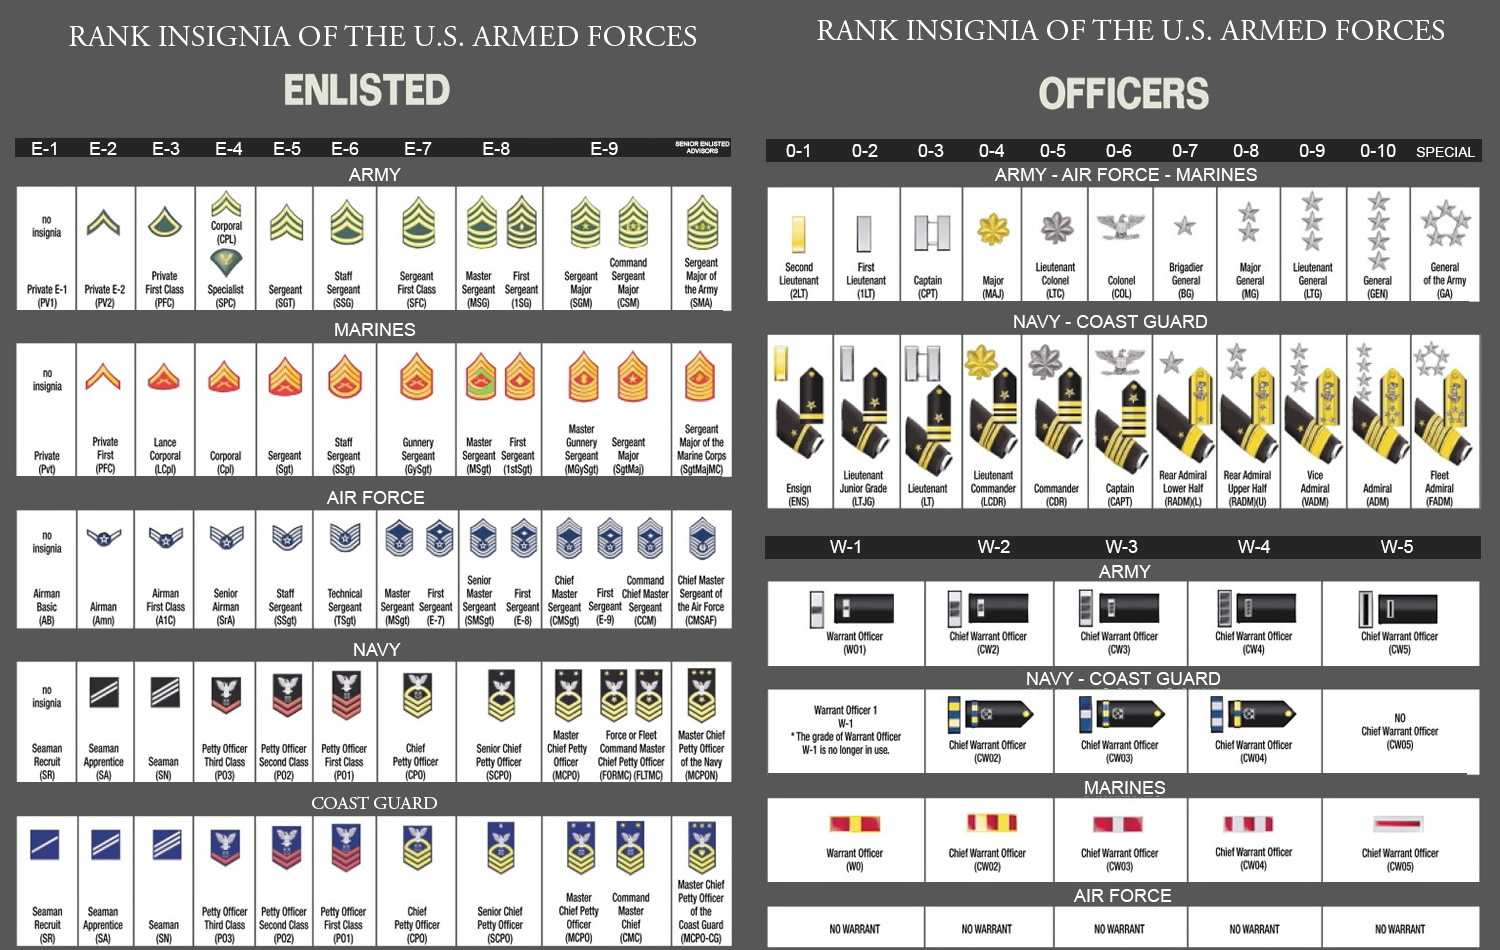 image for US Military Ranks Officer and Enlisted